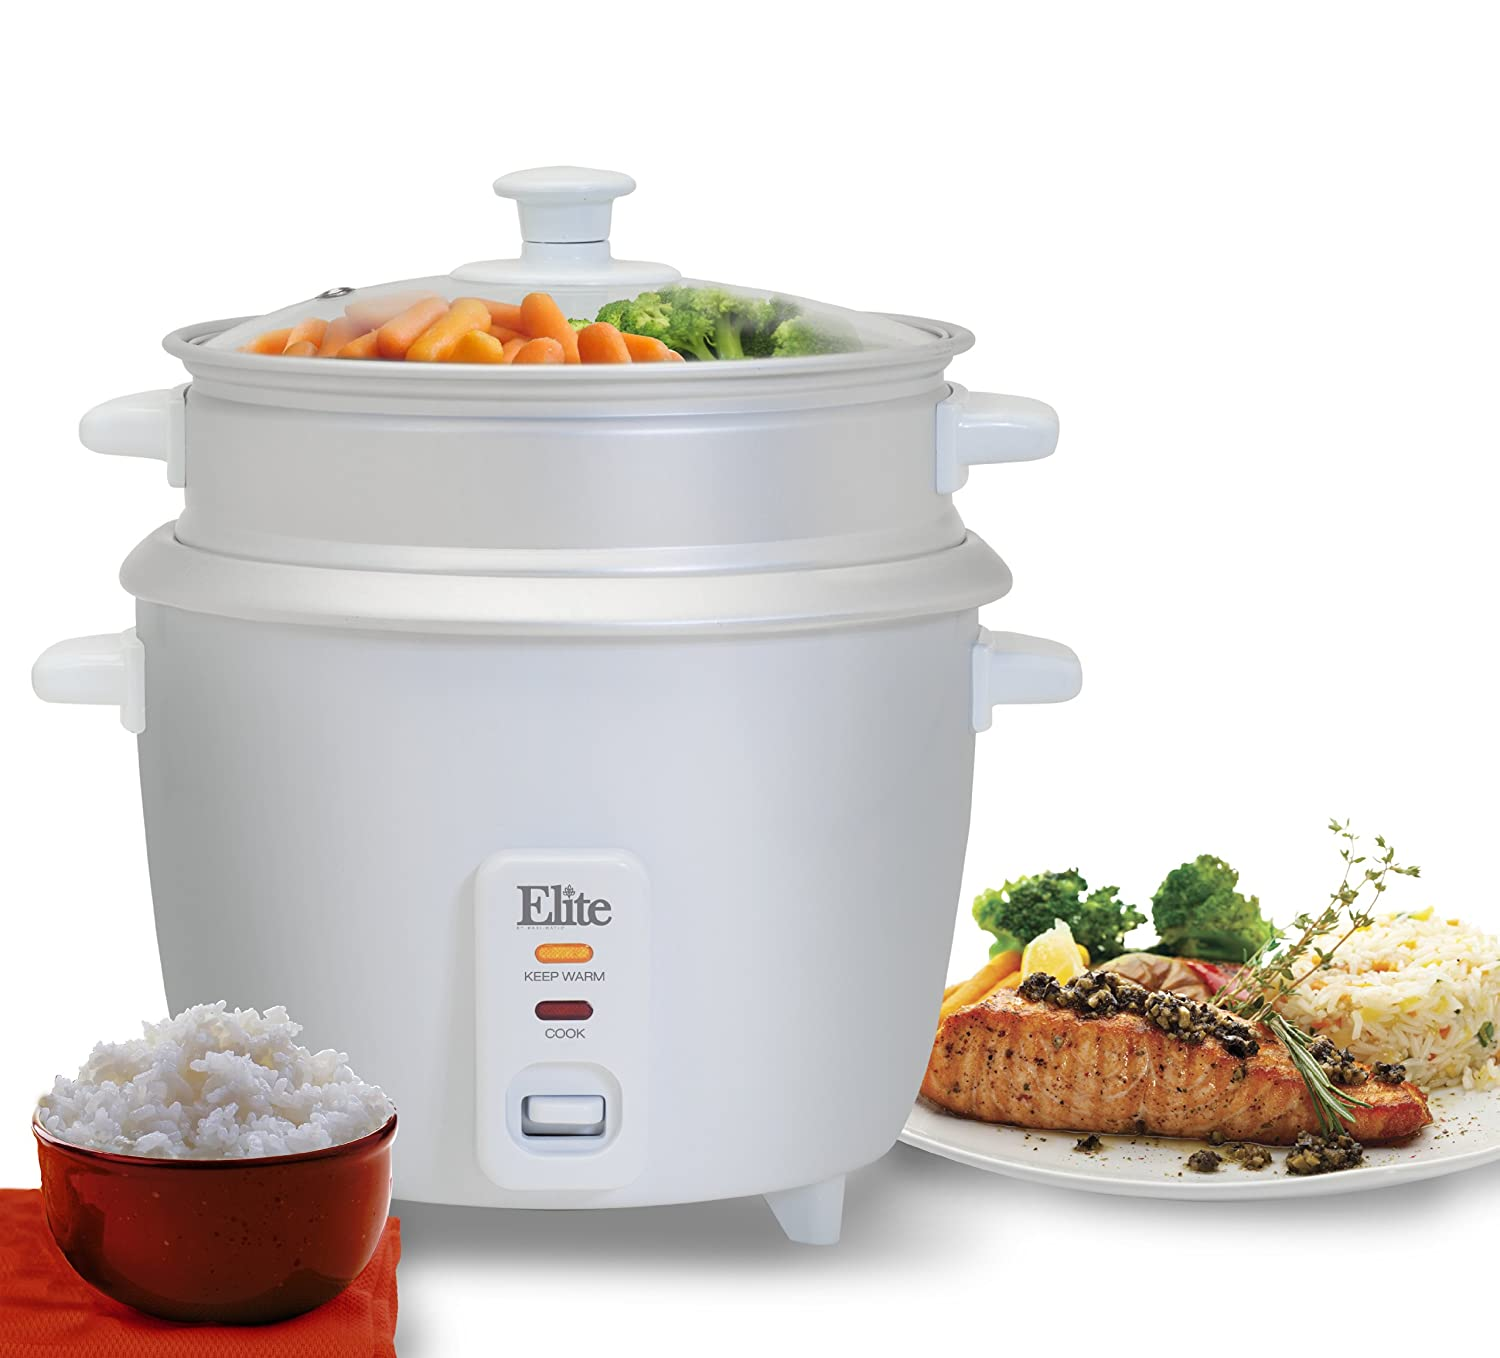 Elite Cuisine ERC-003 Maxi-Matic 6 Cup Rice Cooker with Glass Lid, White